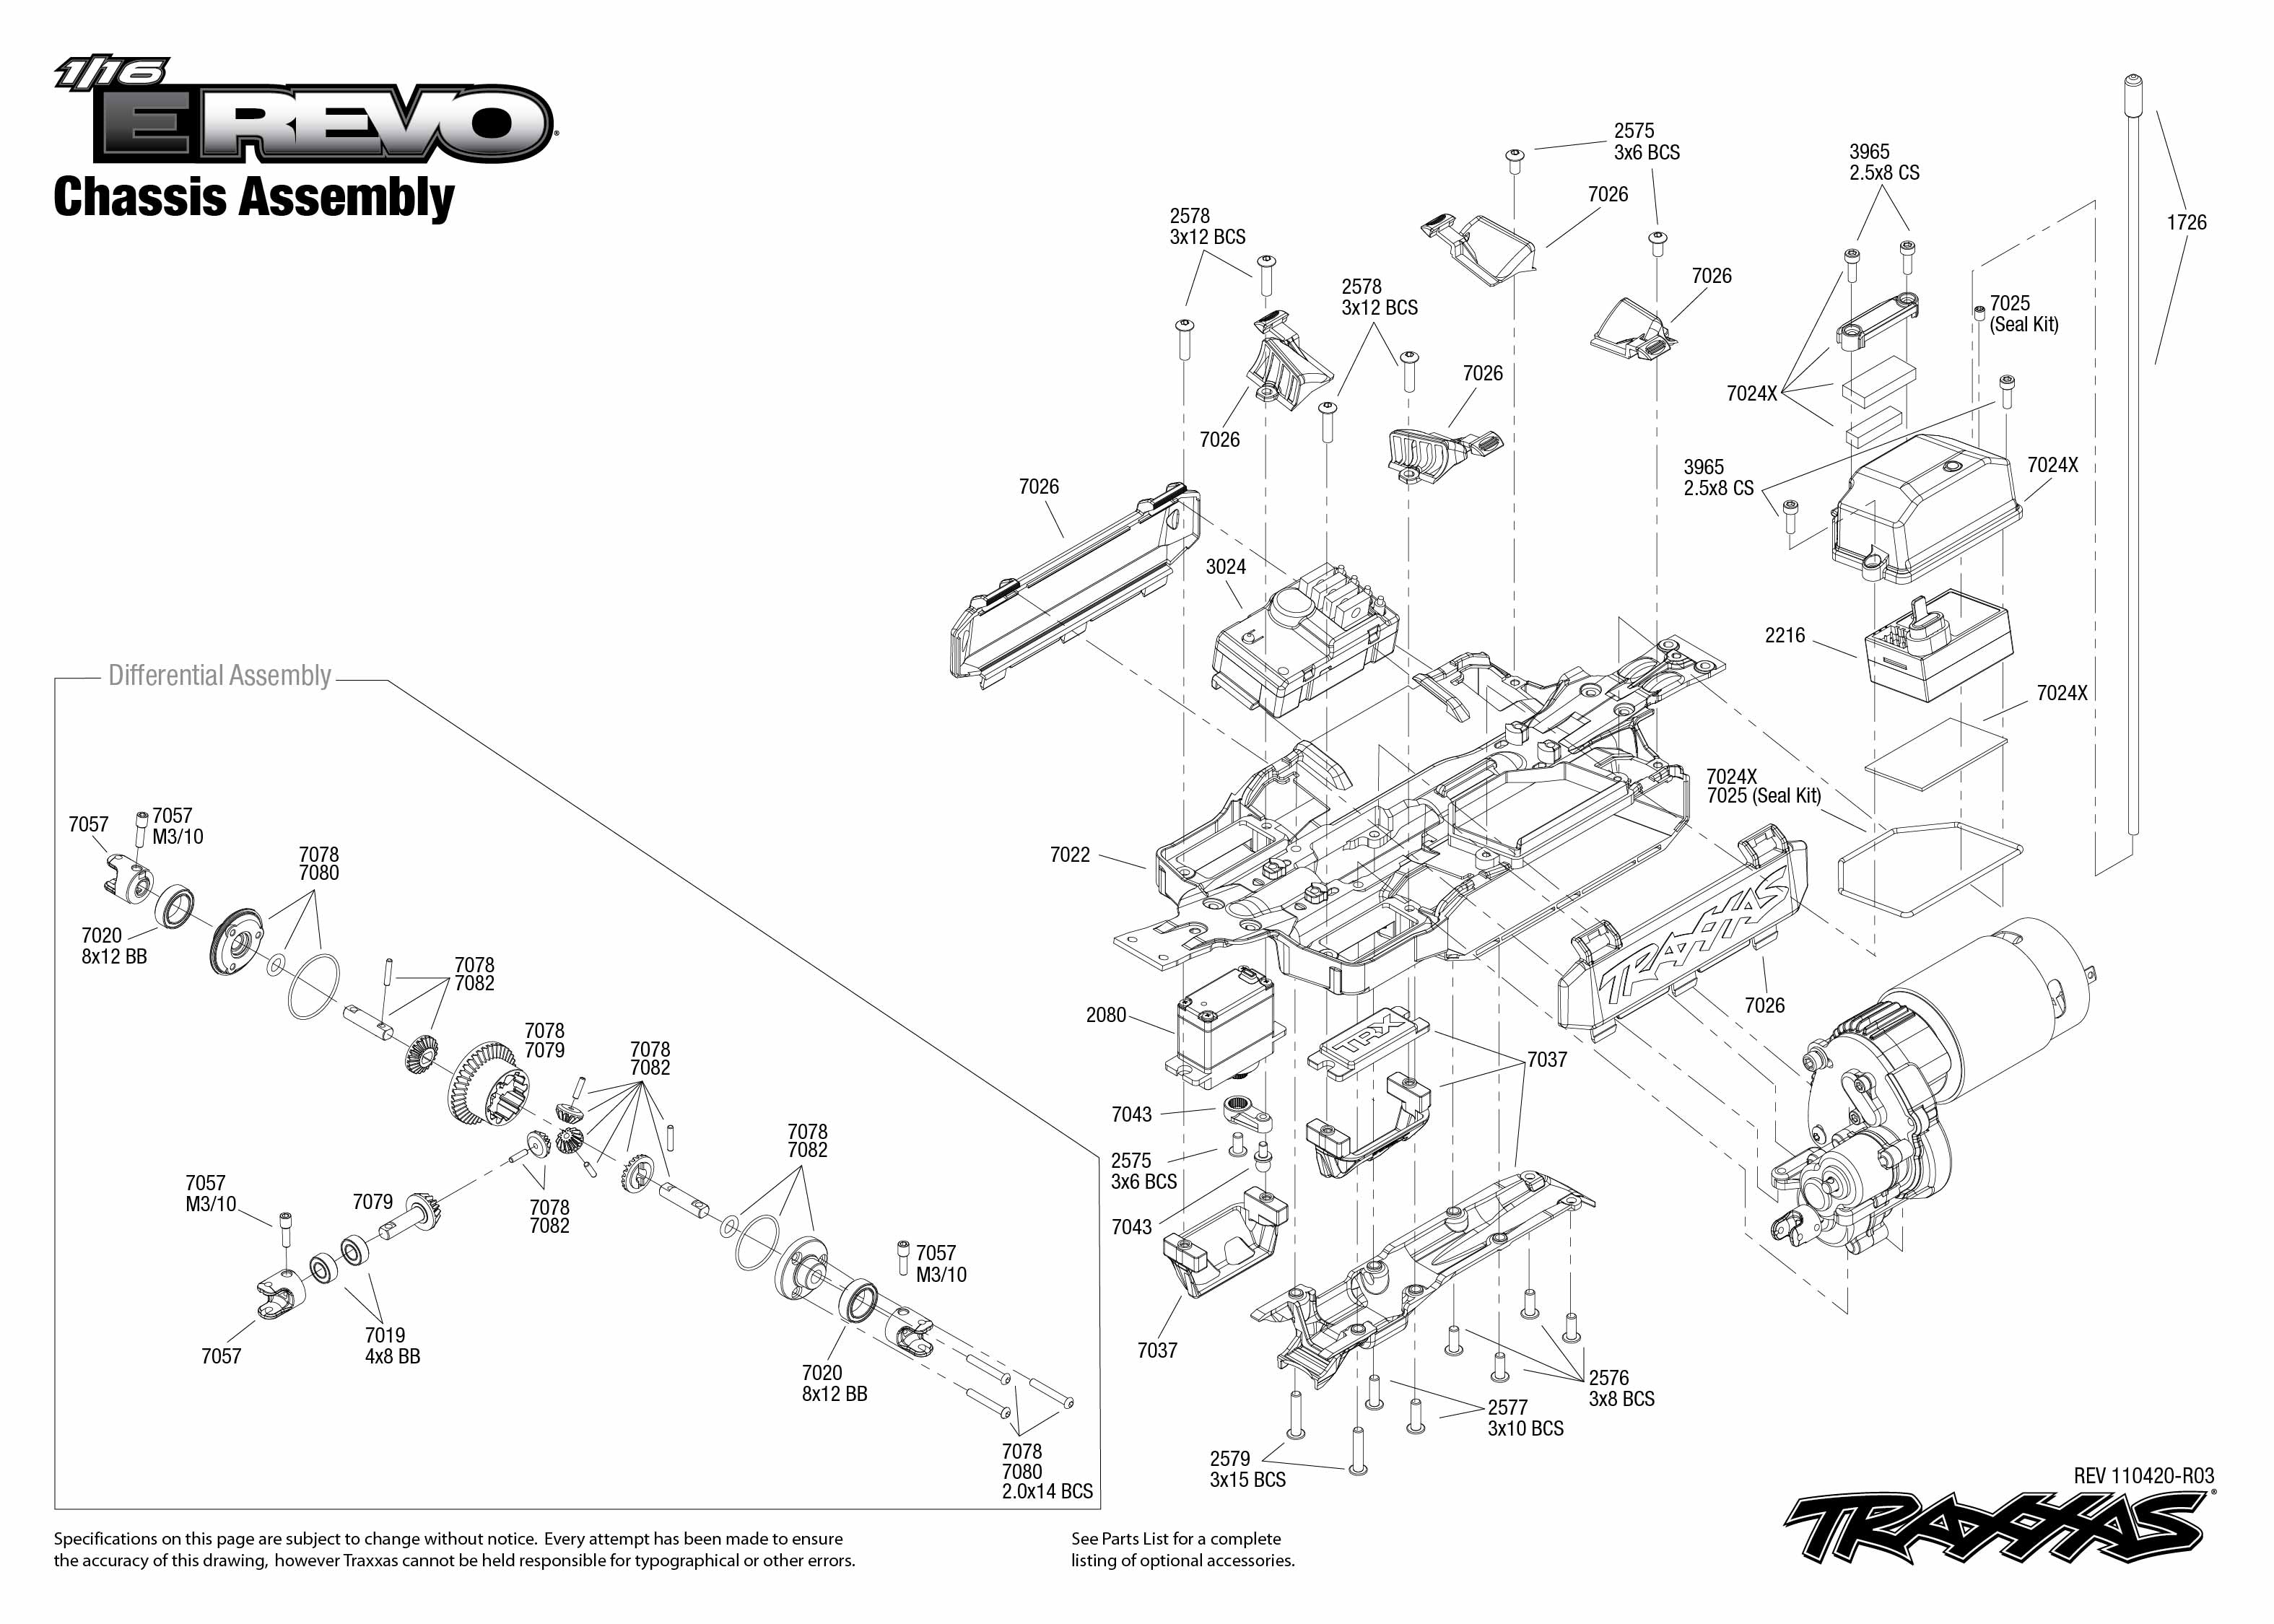 7105 Chassis Exploded View (1/16 E-Revo Brushed, w/ Titan